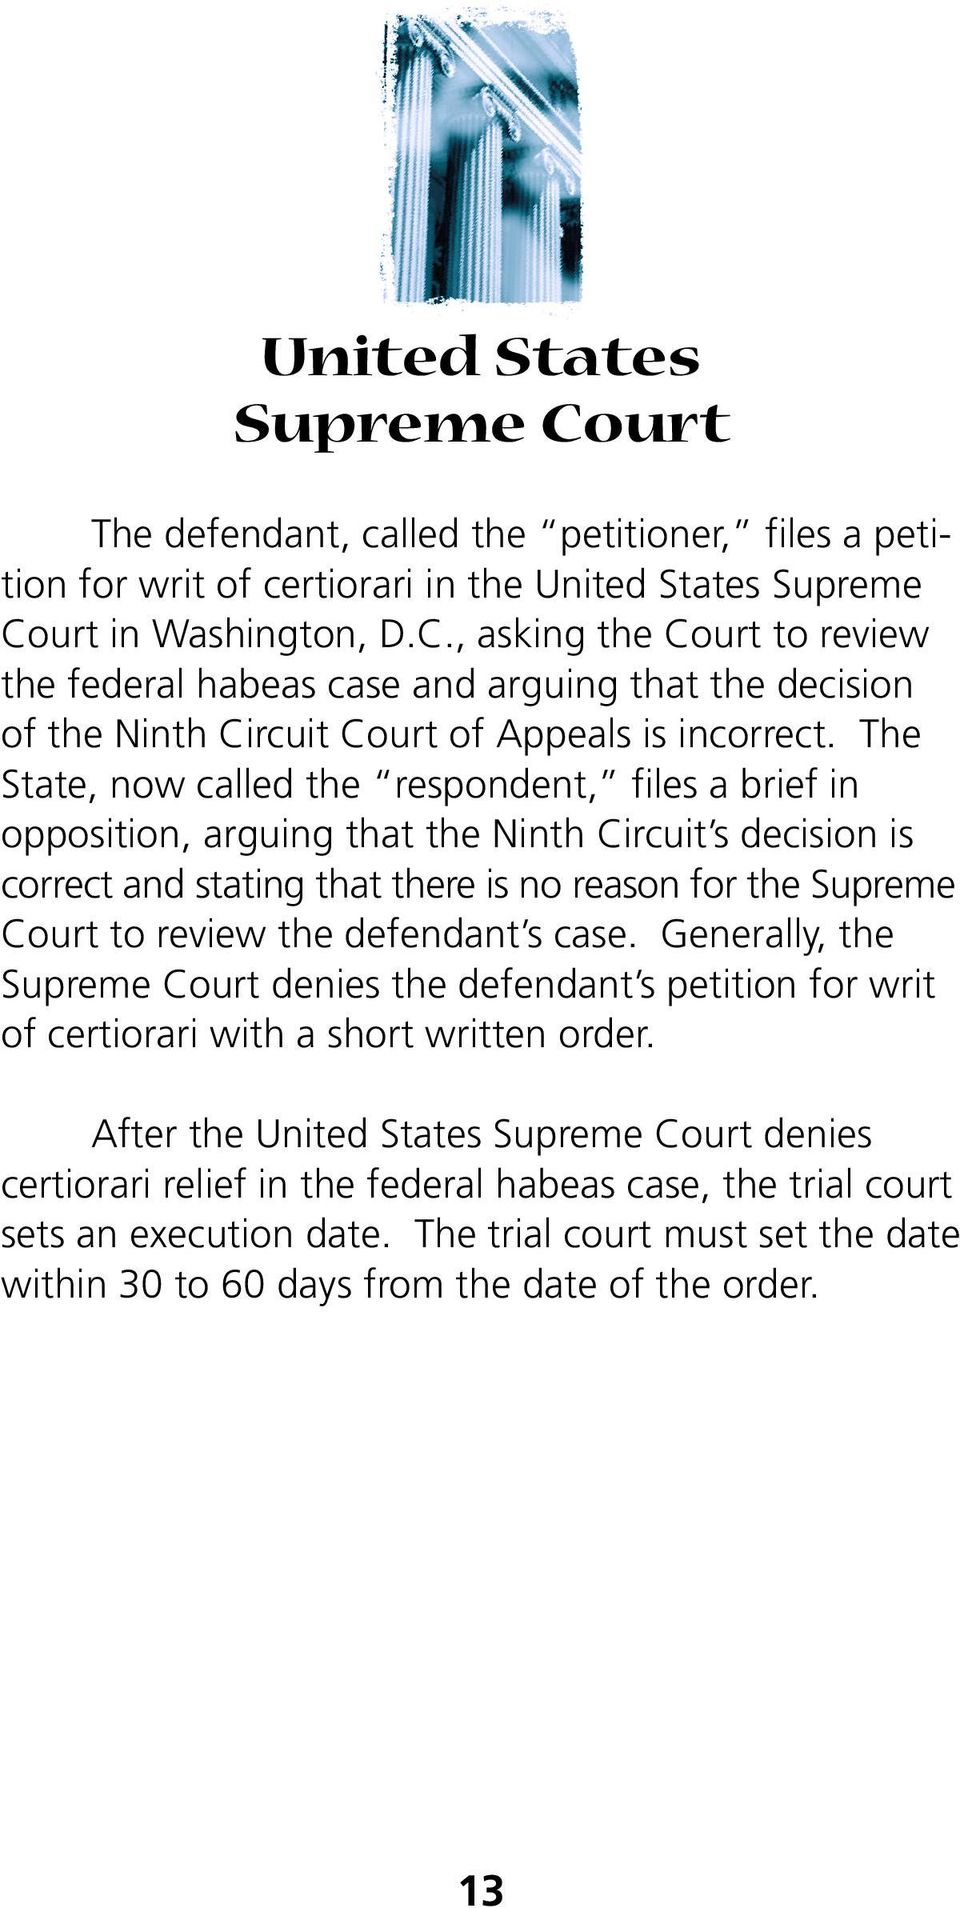 defendant s case. Generally, the Supreme Court denies the defendant s petition for writ of certiorari with a short written order.